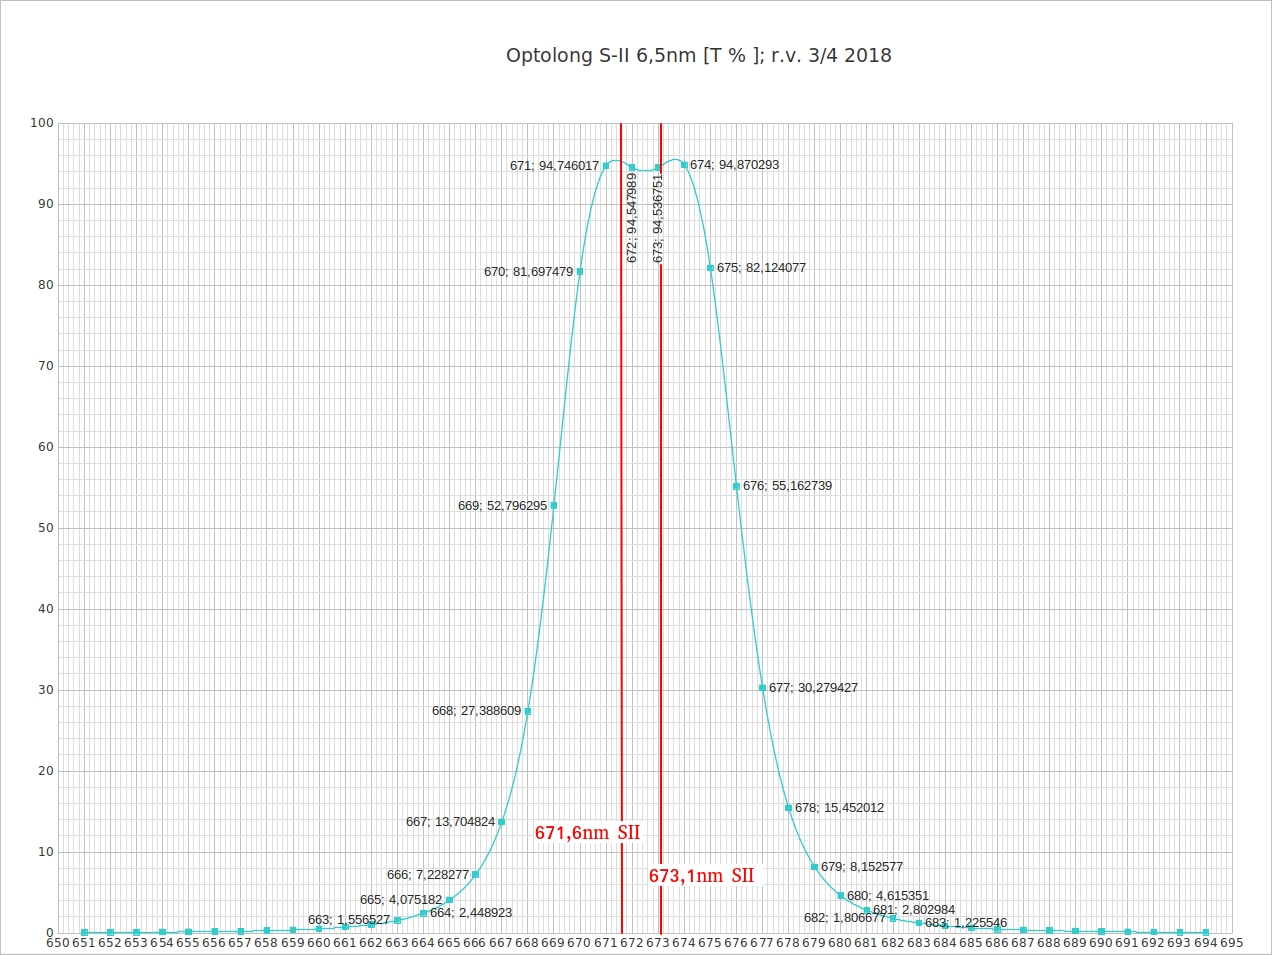 SII 6,5 nm Optolong Peak 2018.jpg